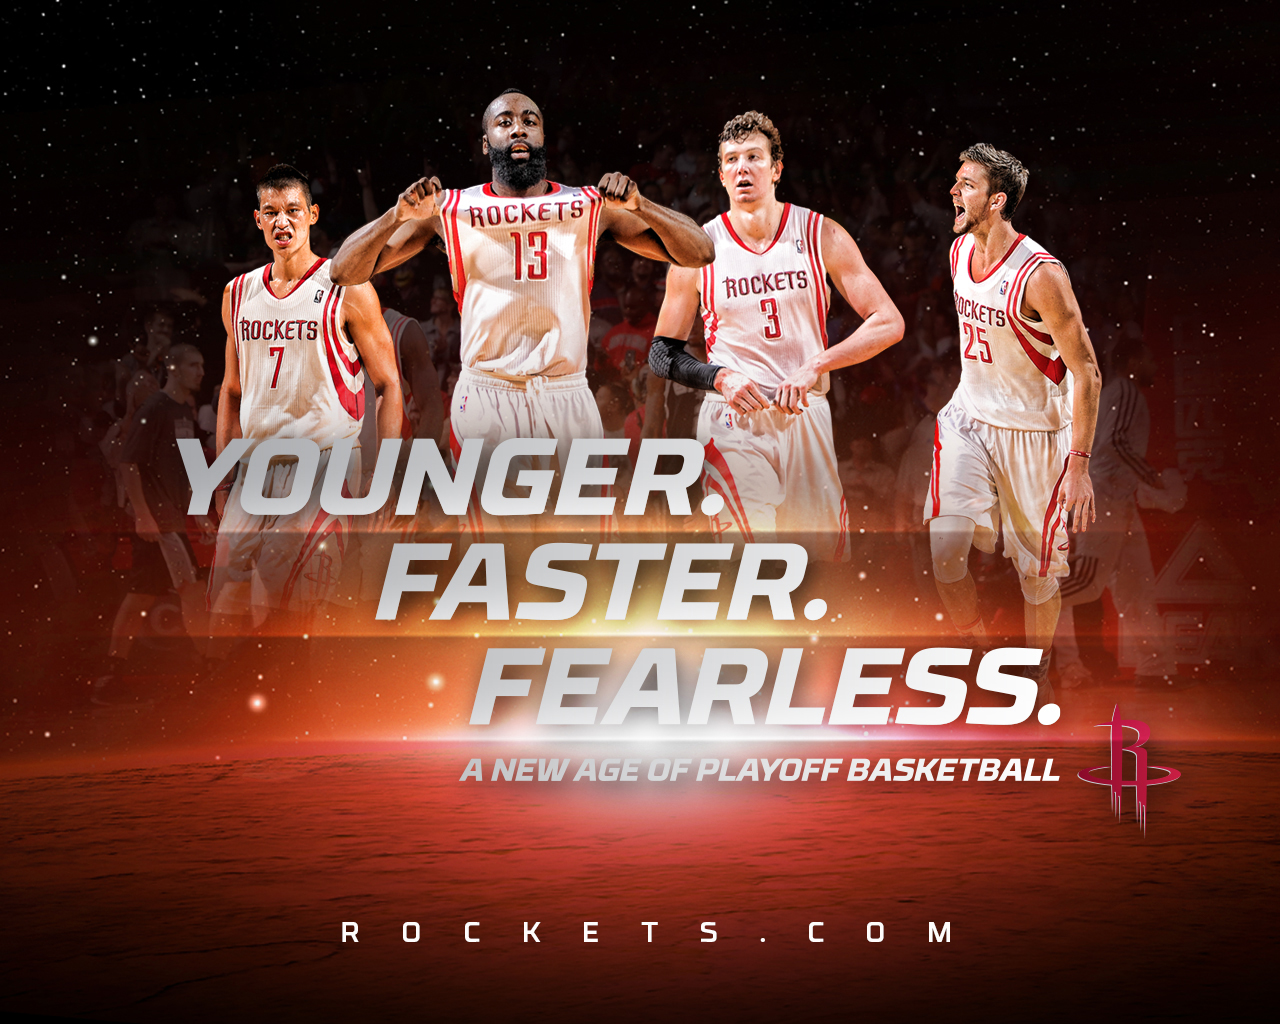 Rockets Wallpaper THE OFFICIAL SITE OF THE HOUSTON ROCKETS 1280x1024